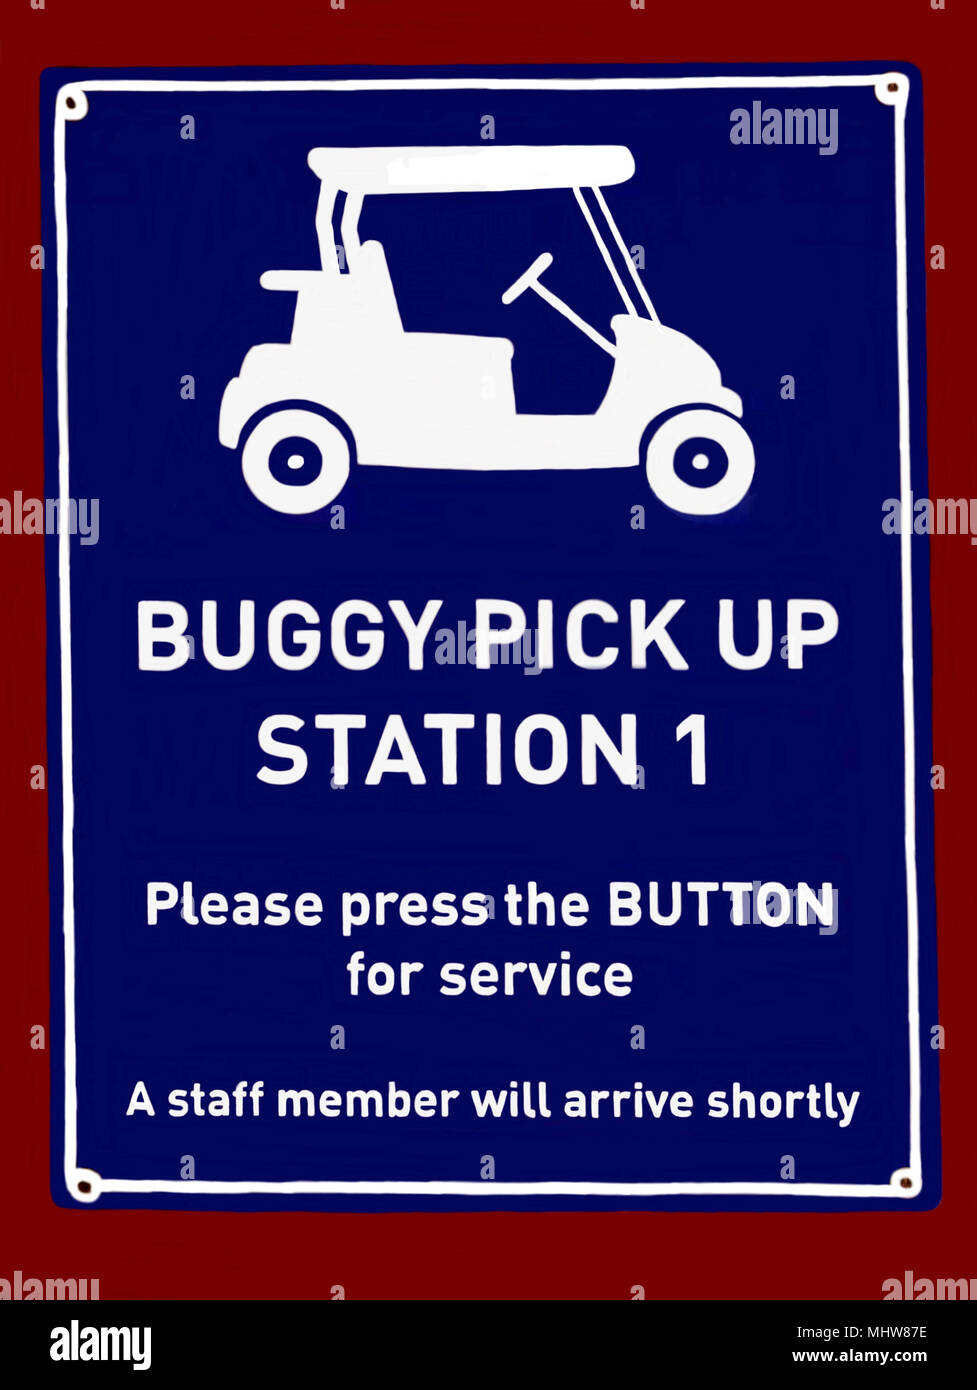 A notice indicating where pedestrians can arrange pickup in a golf buggy f - Stock Image